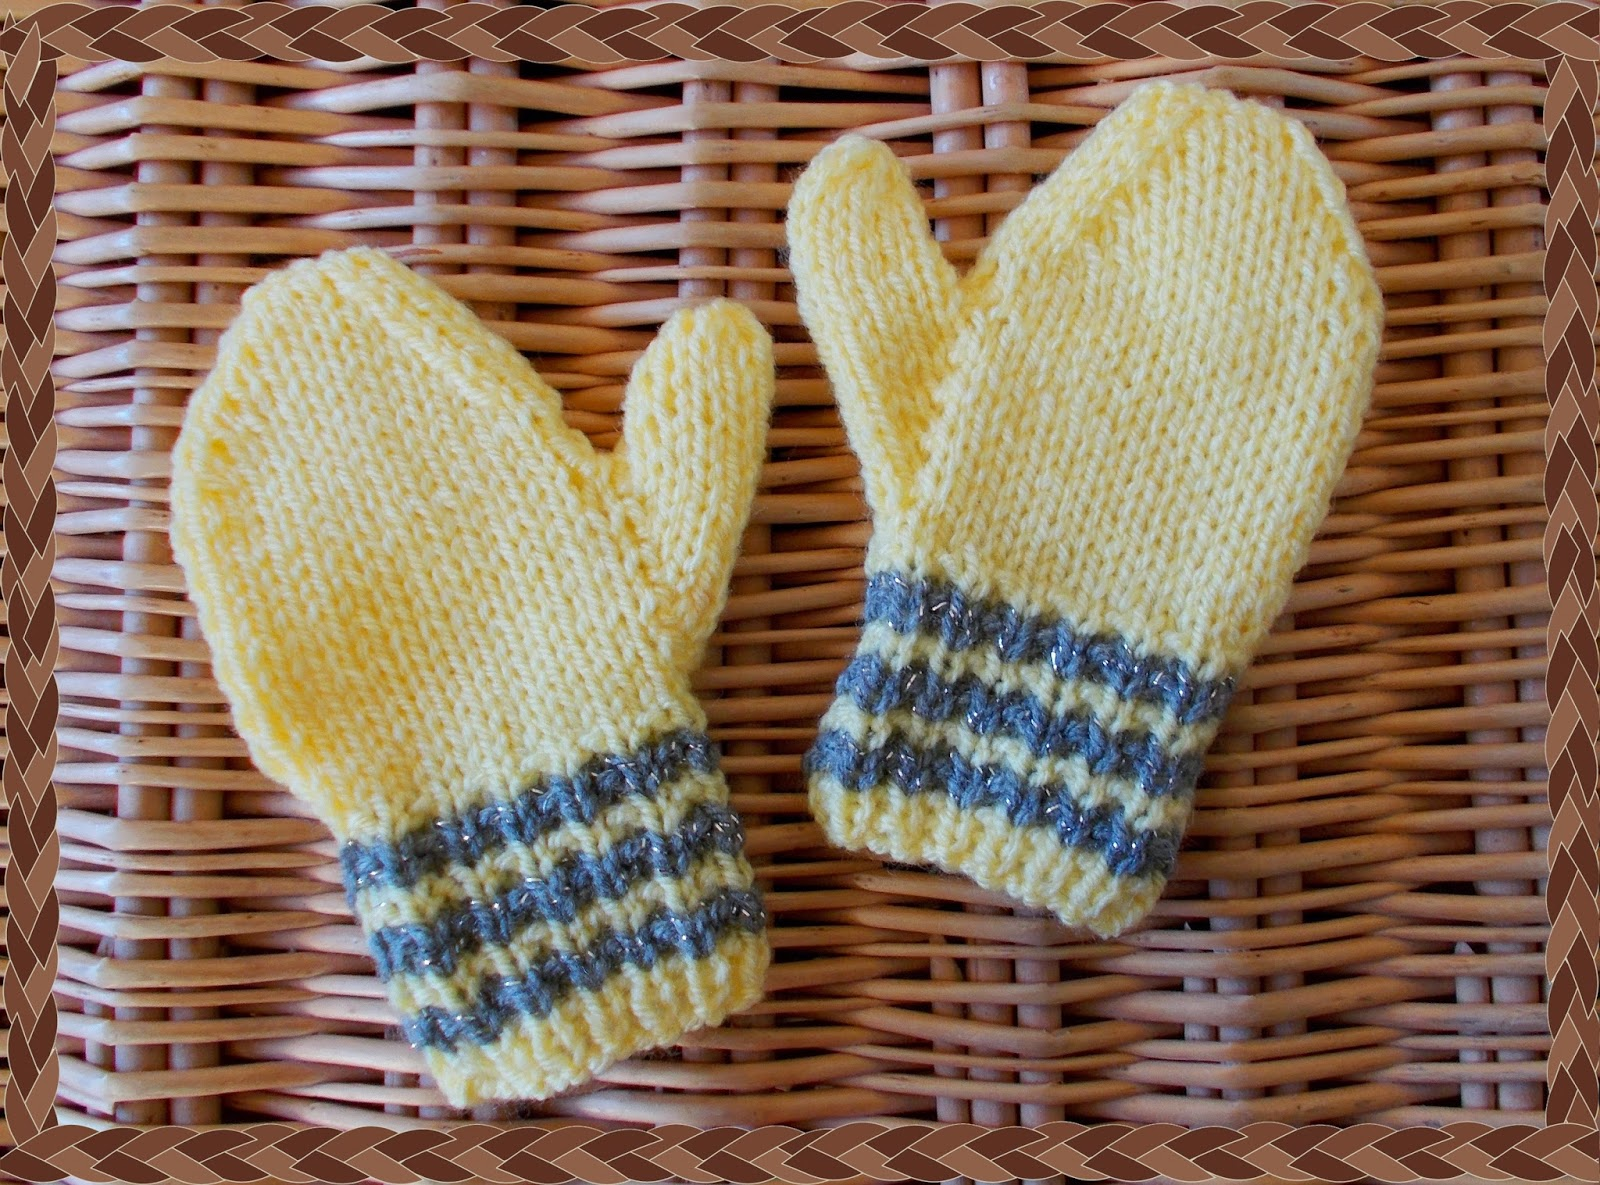 Baby Mittens Knitting Pattern 4 Needles : mariannas lazy daisy days: Toddler Mittens